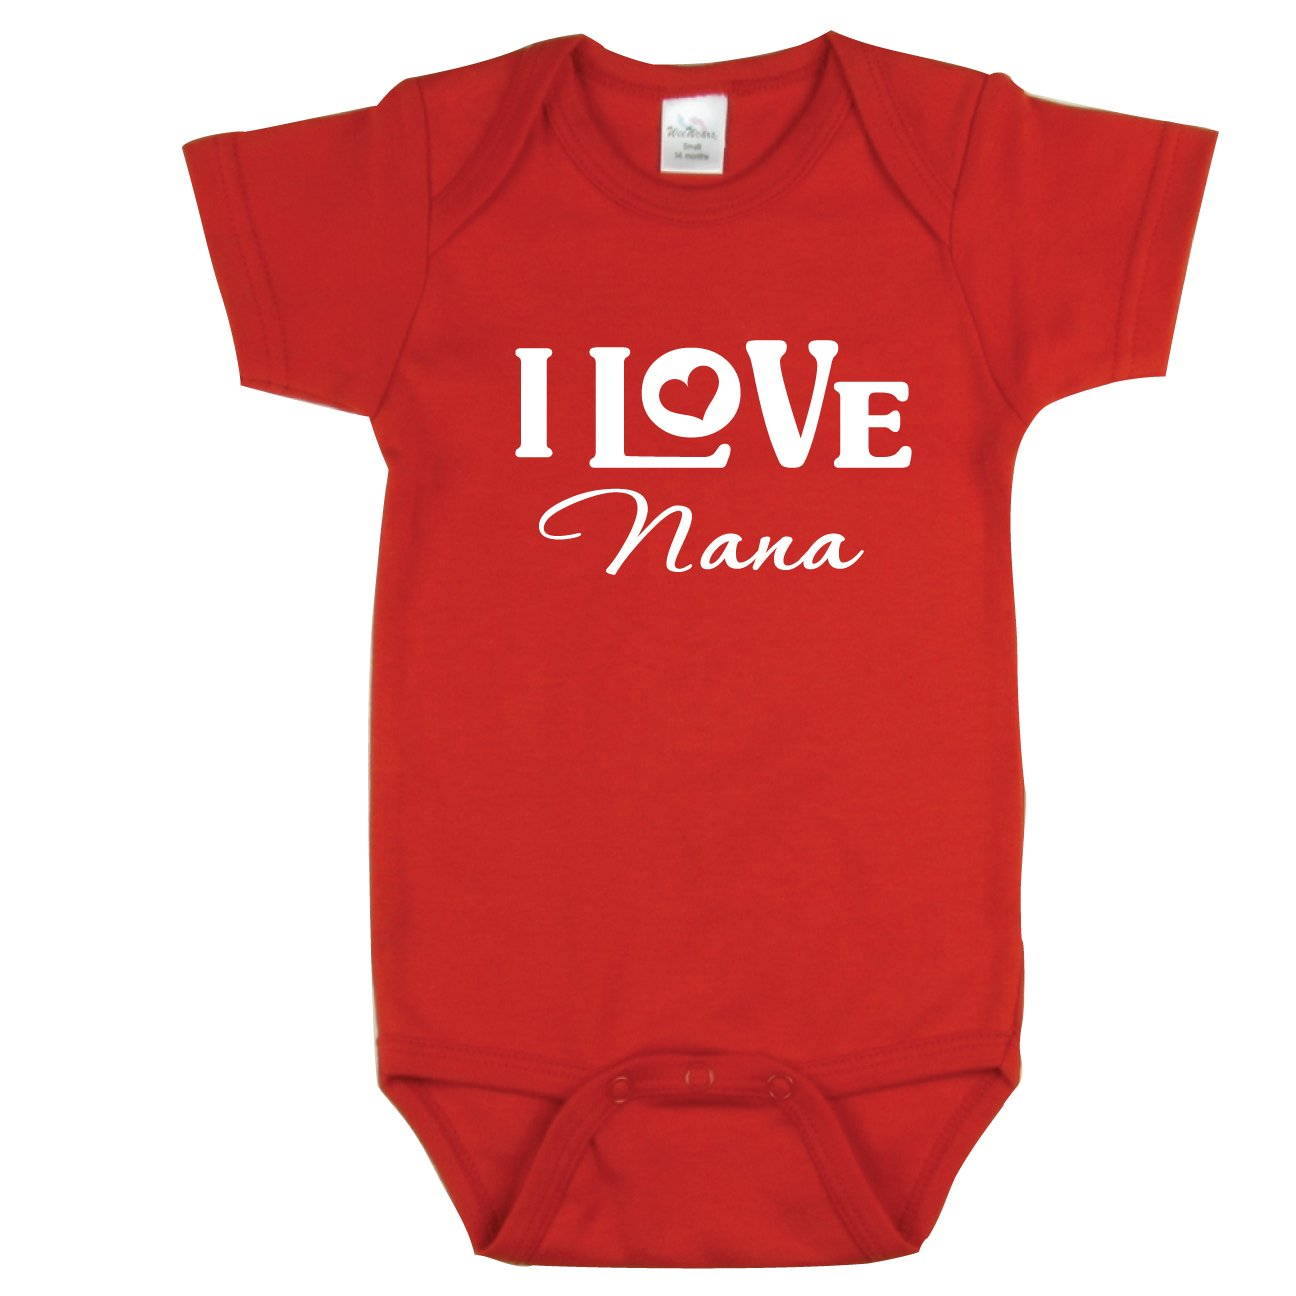 I Love My Nana Bodysuit, Adorable Baby Outfit, Red 0-3 mo